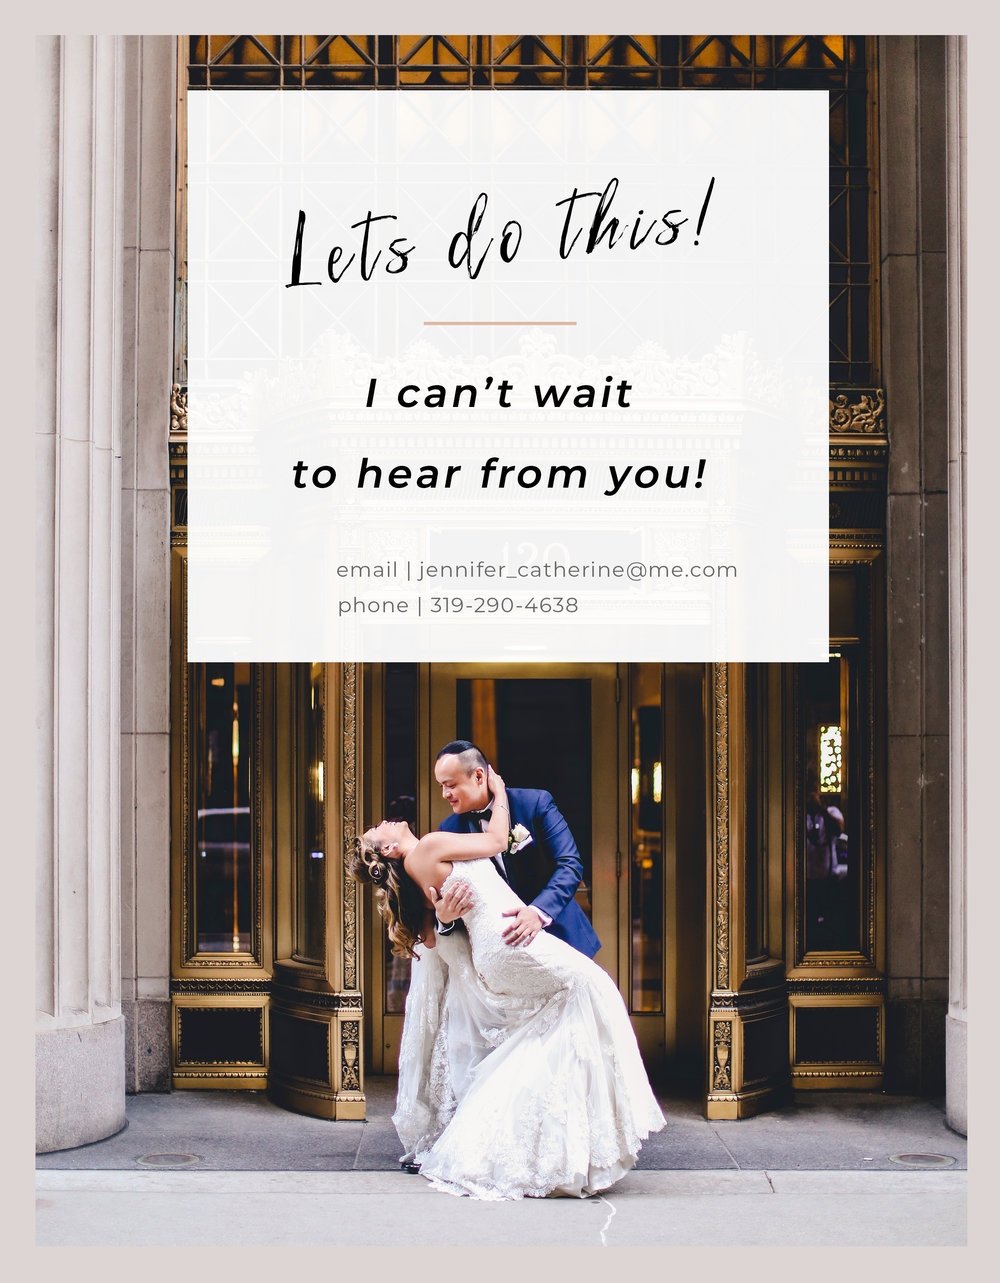 Wedding-Photography-Guidebook-Second-Edit_0014_Pg 15 - Lets Do This!.jpg